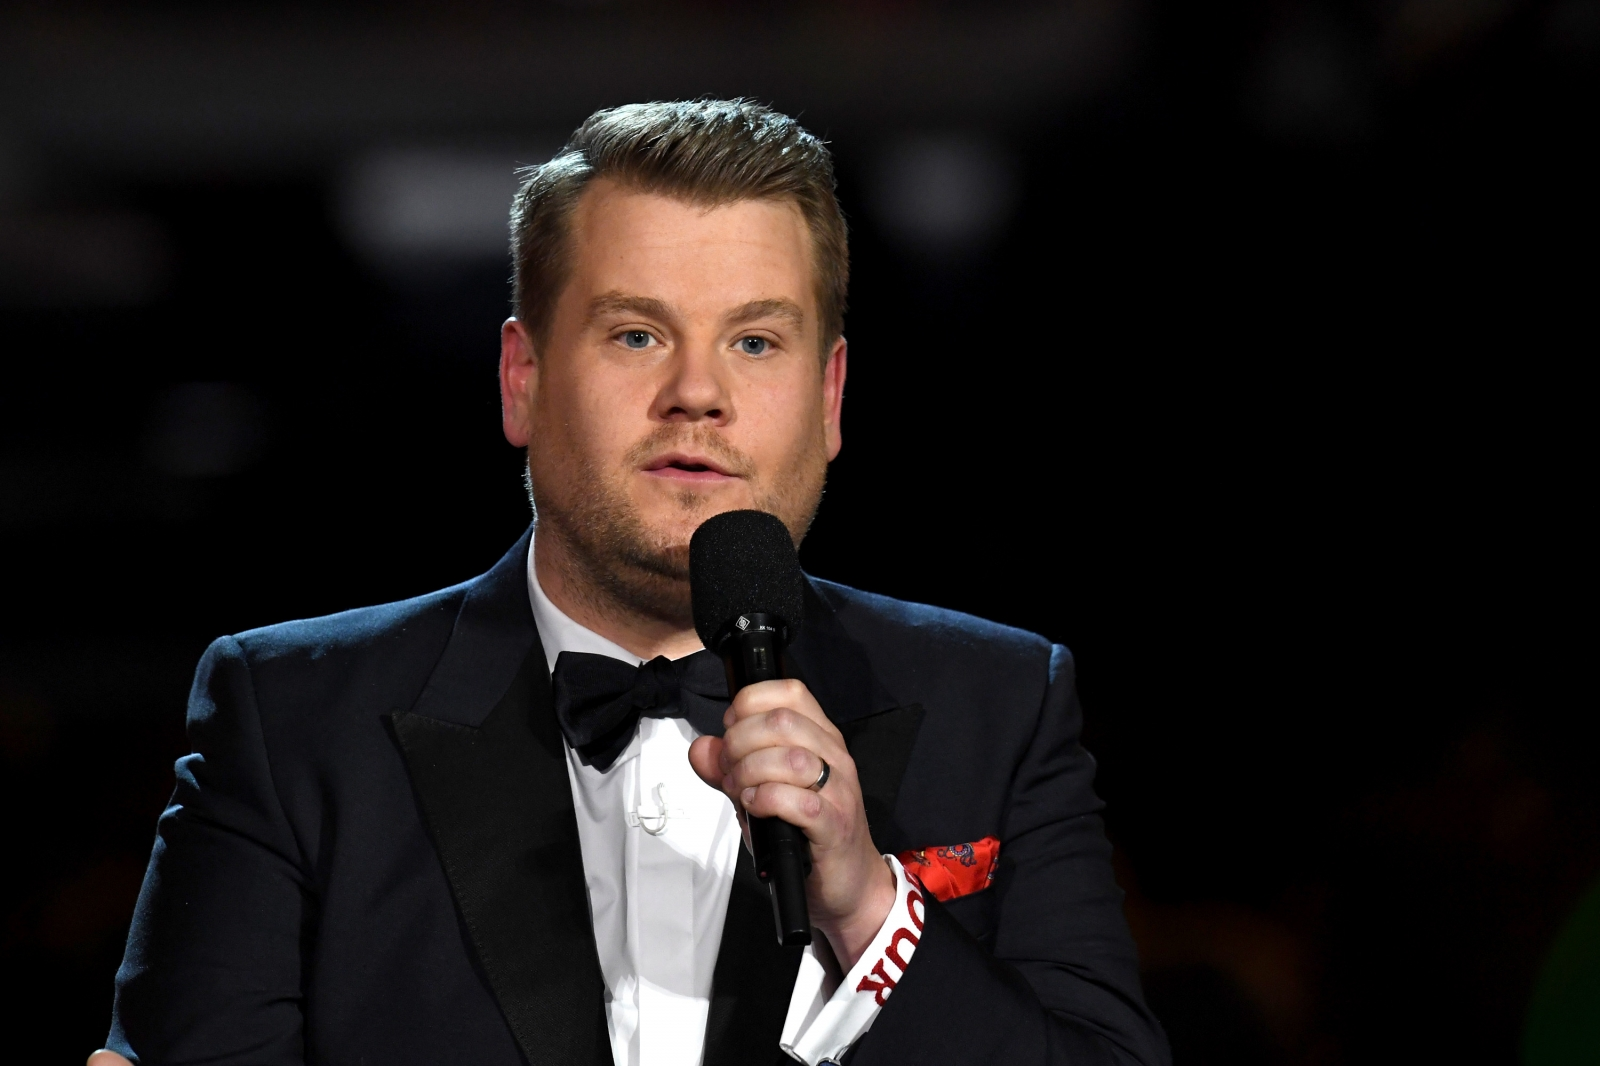 james corden - photo #9